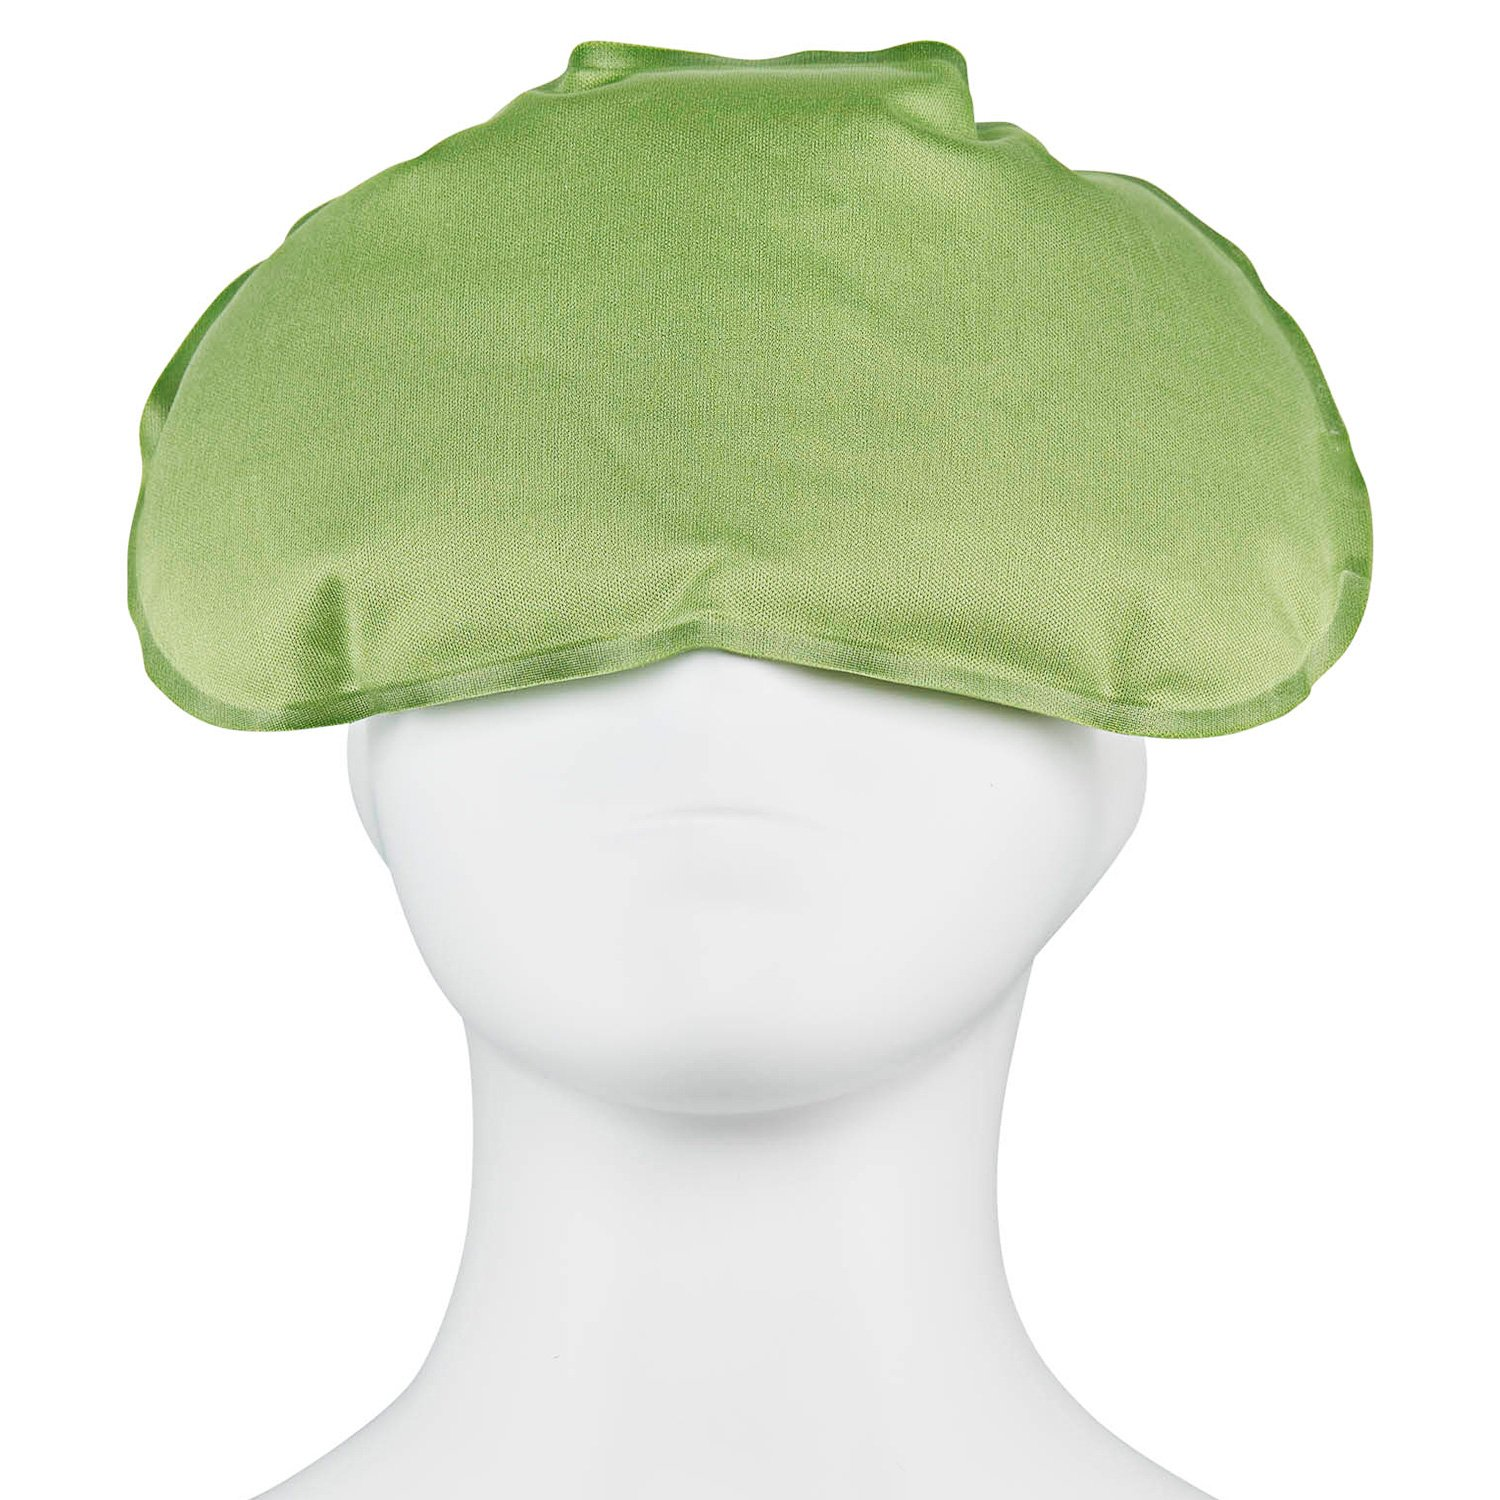 Amethya Hot/Cold Therapy Eye Mask, Ice Pack Therapy. Reusable relief and therapy treatment for migraines and headaches